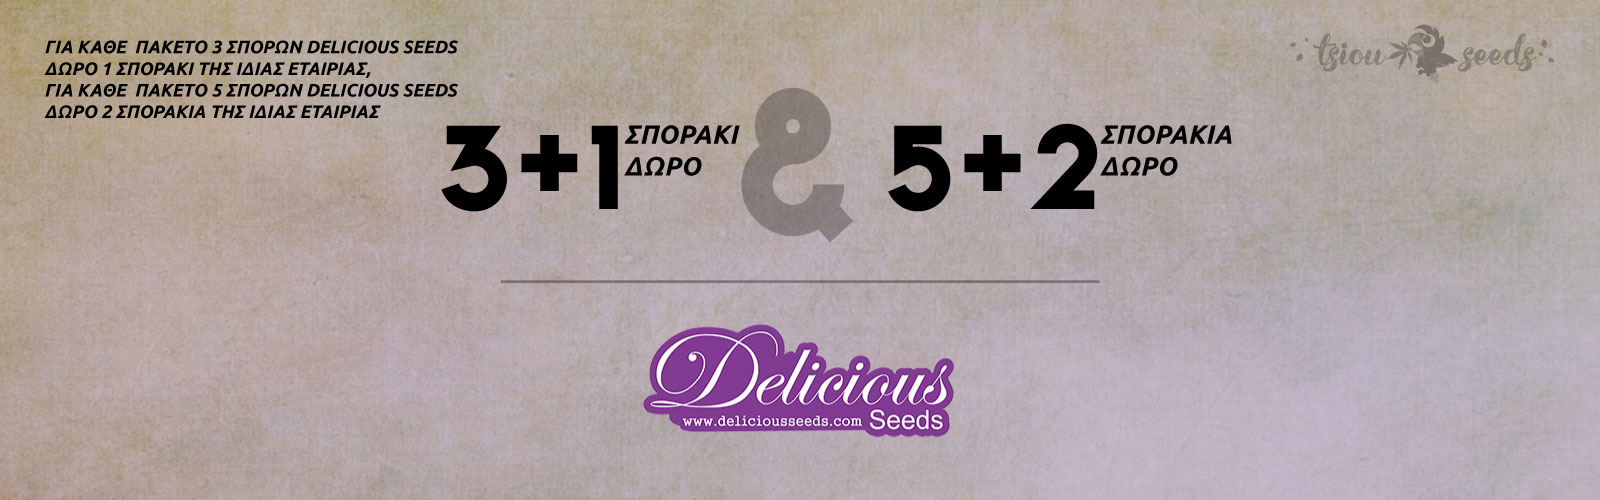 Delicious-Offer